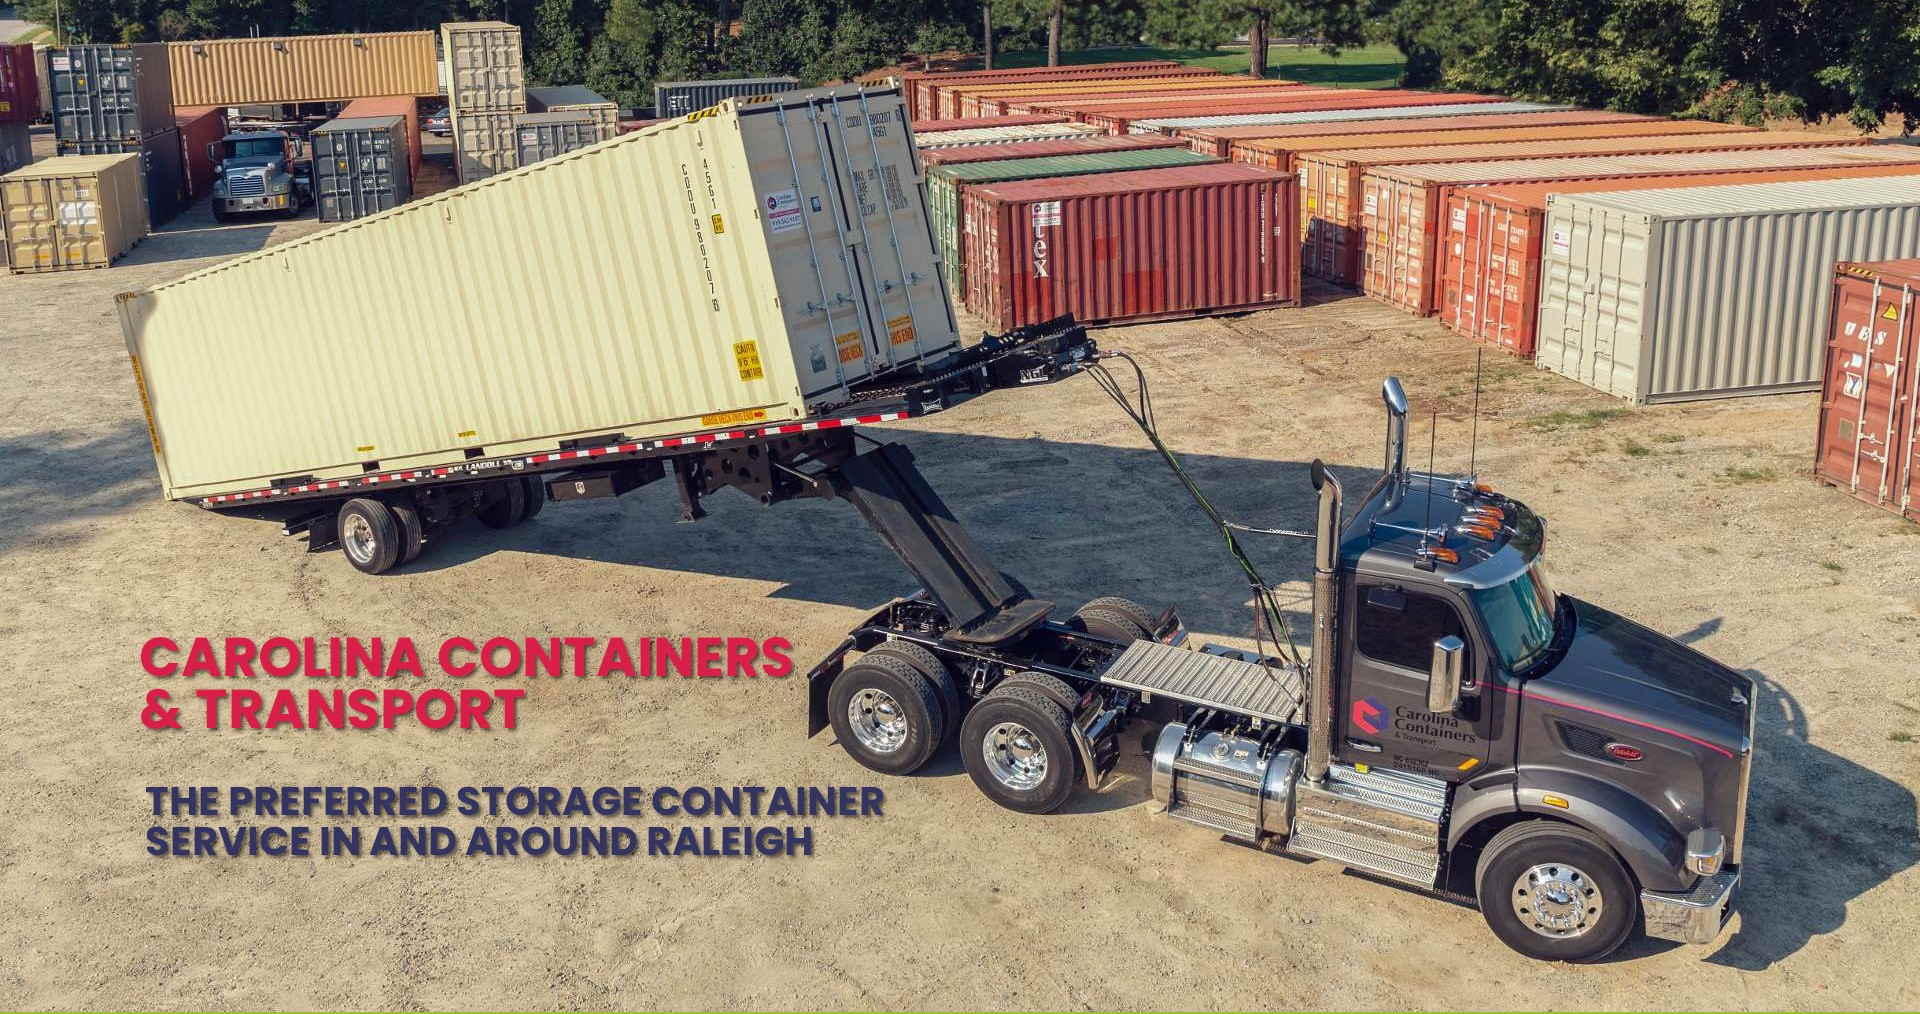 carolina-containers-sales-rental-raleigh-1-40o